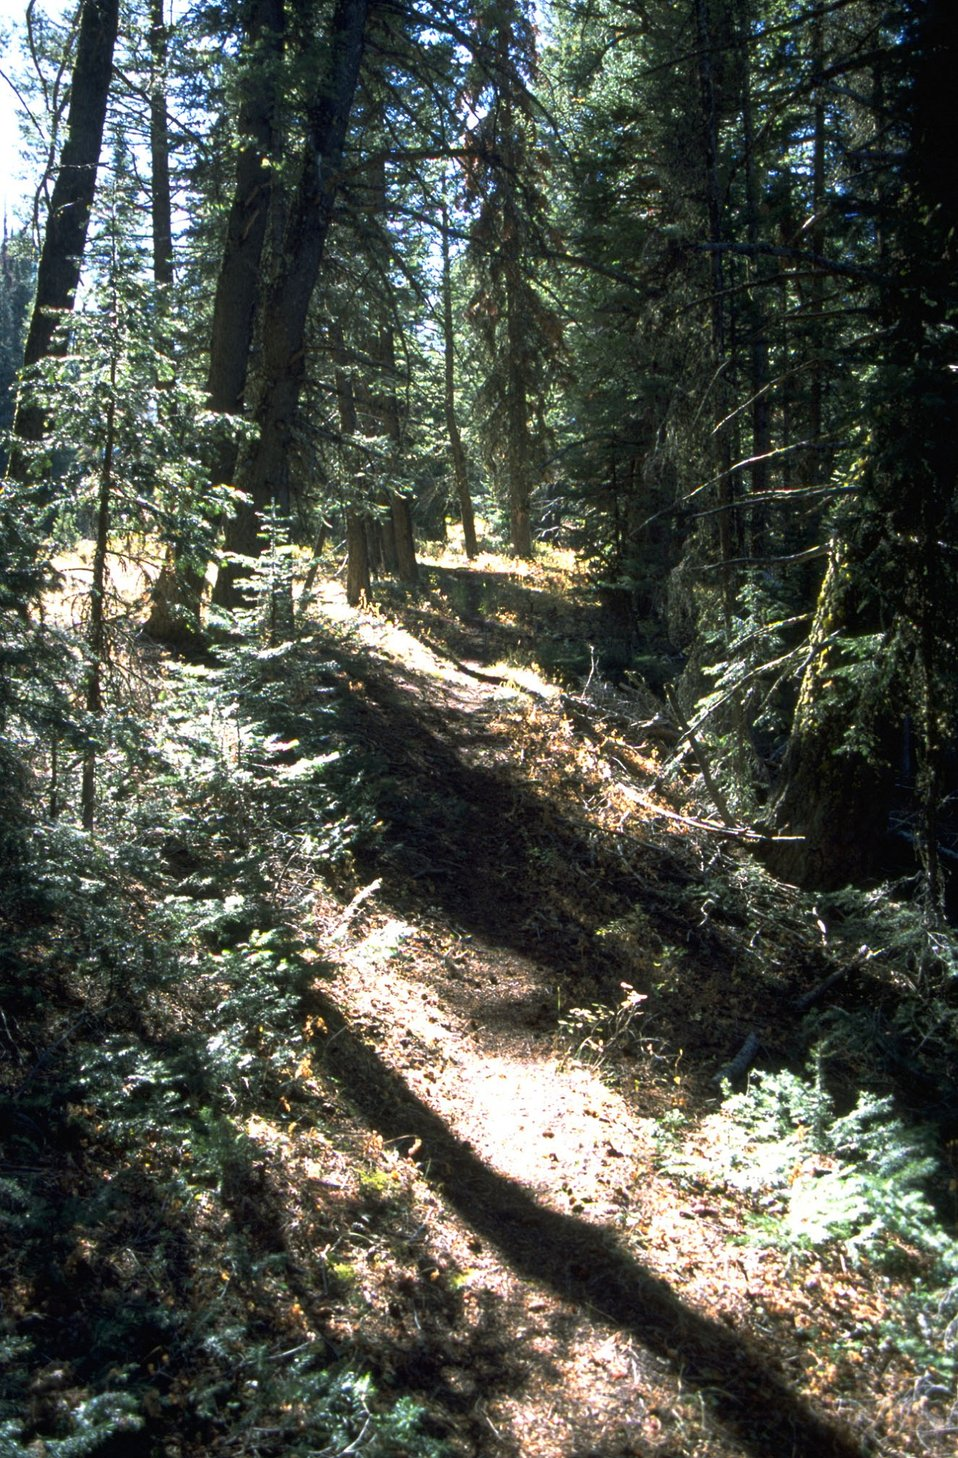 Trail in forested area